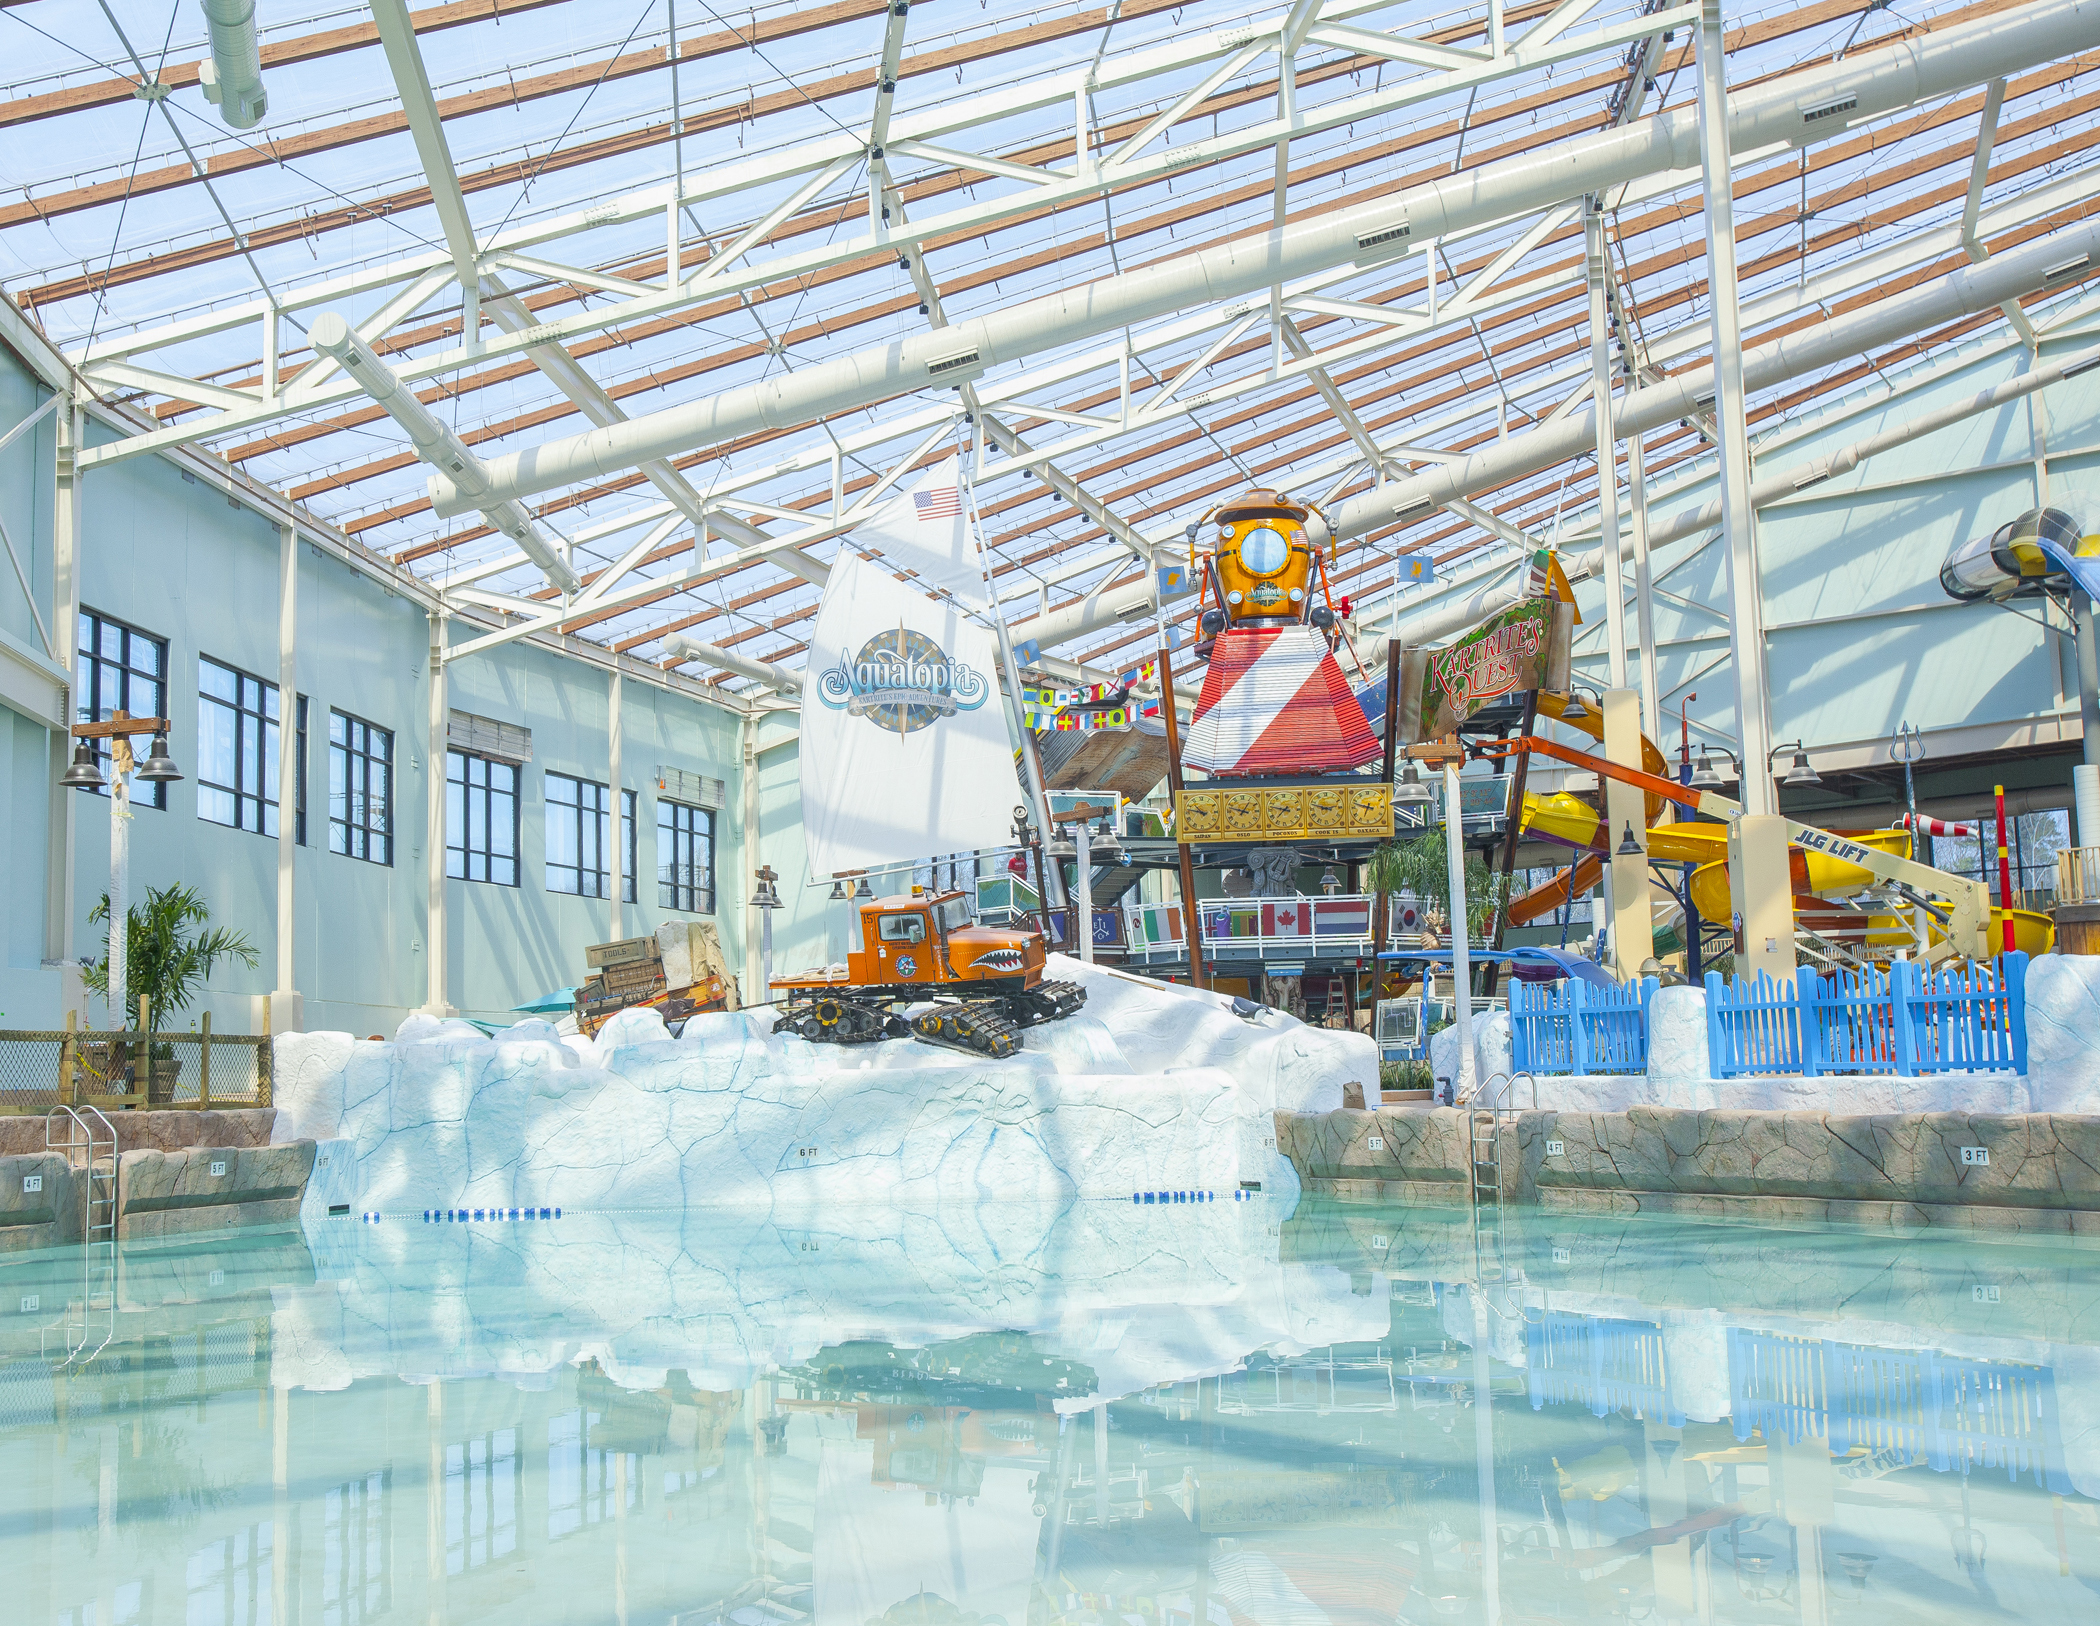 Camelback Lodge Aquatopia Indoor Waterpark Opens In The Pocono Mountains Business Wire